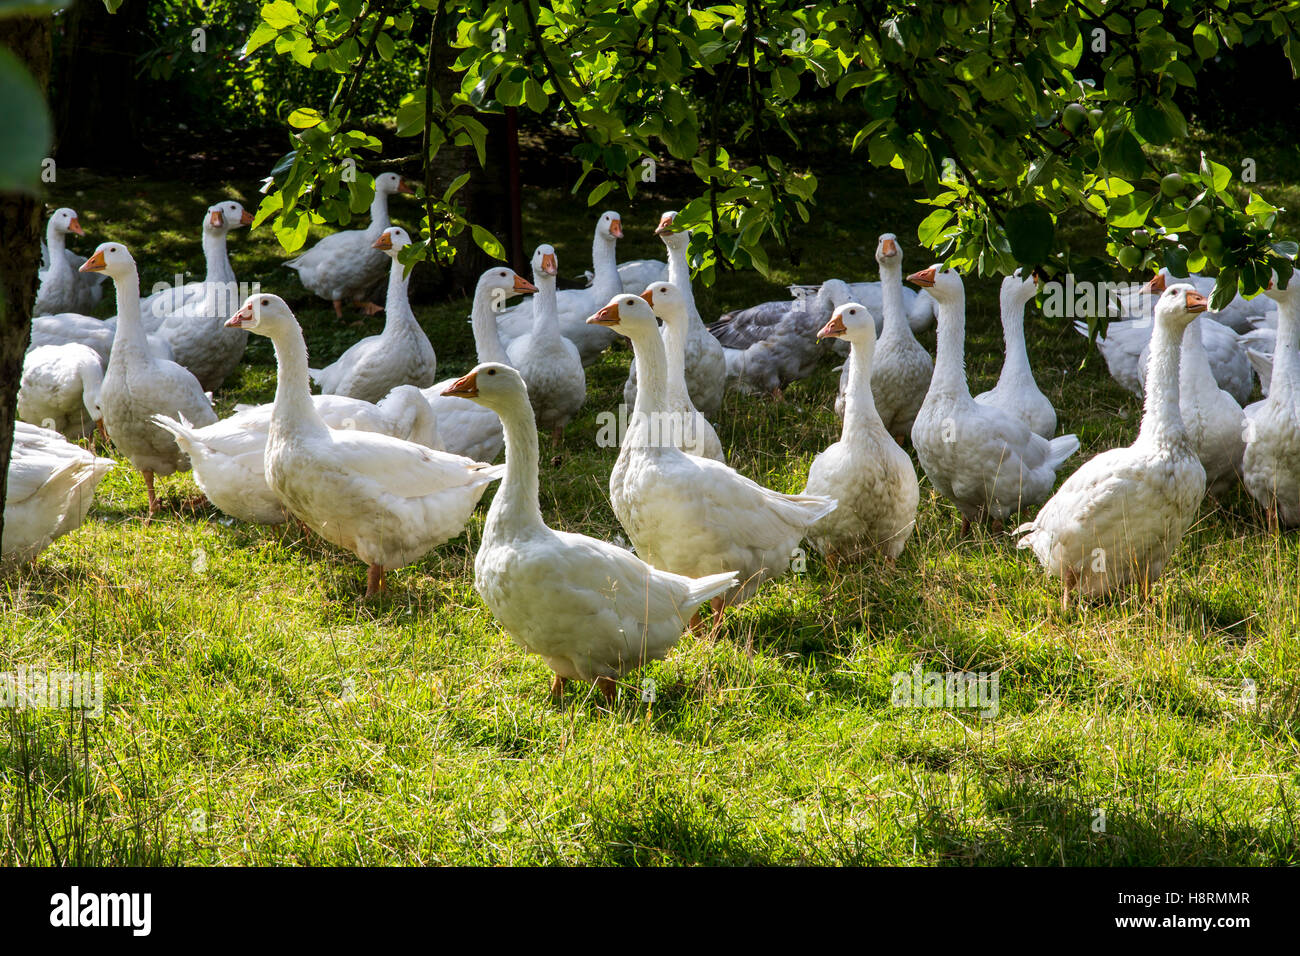 Geese, in a meadow, outdoor life on a farm, open range, free-range, Stock Photo